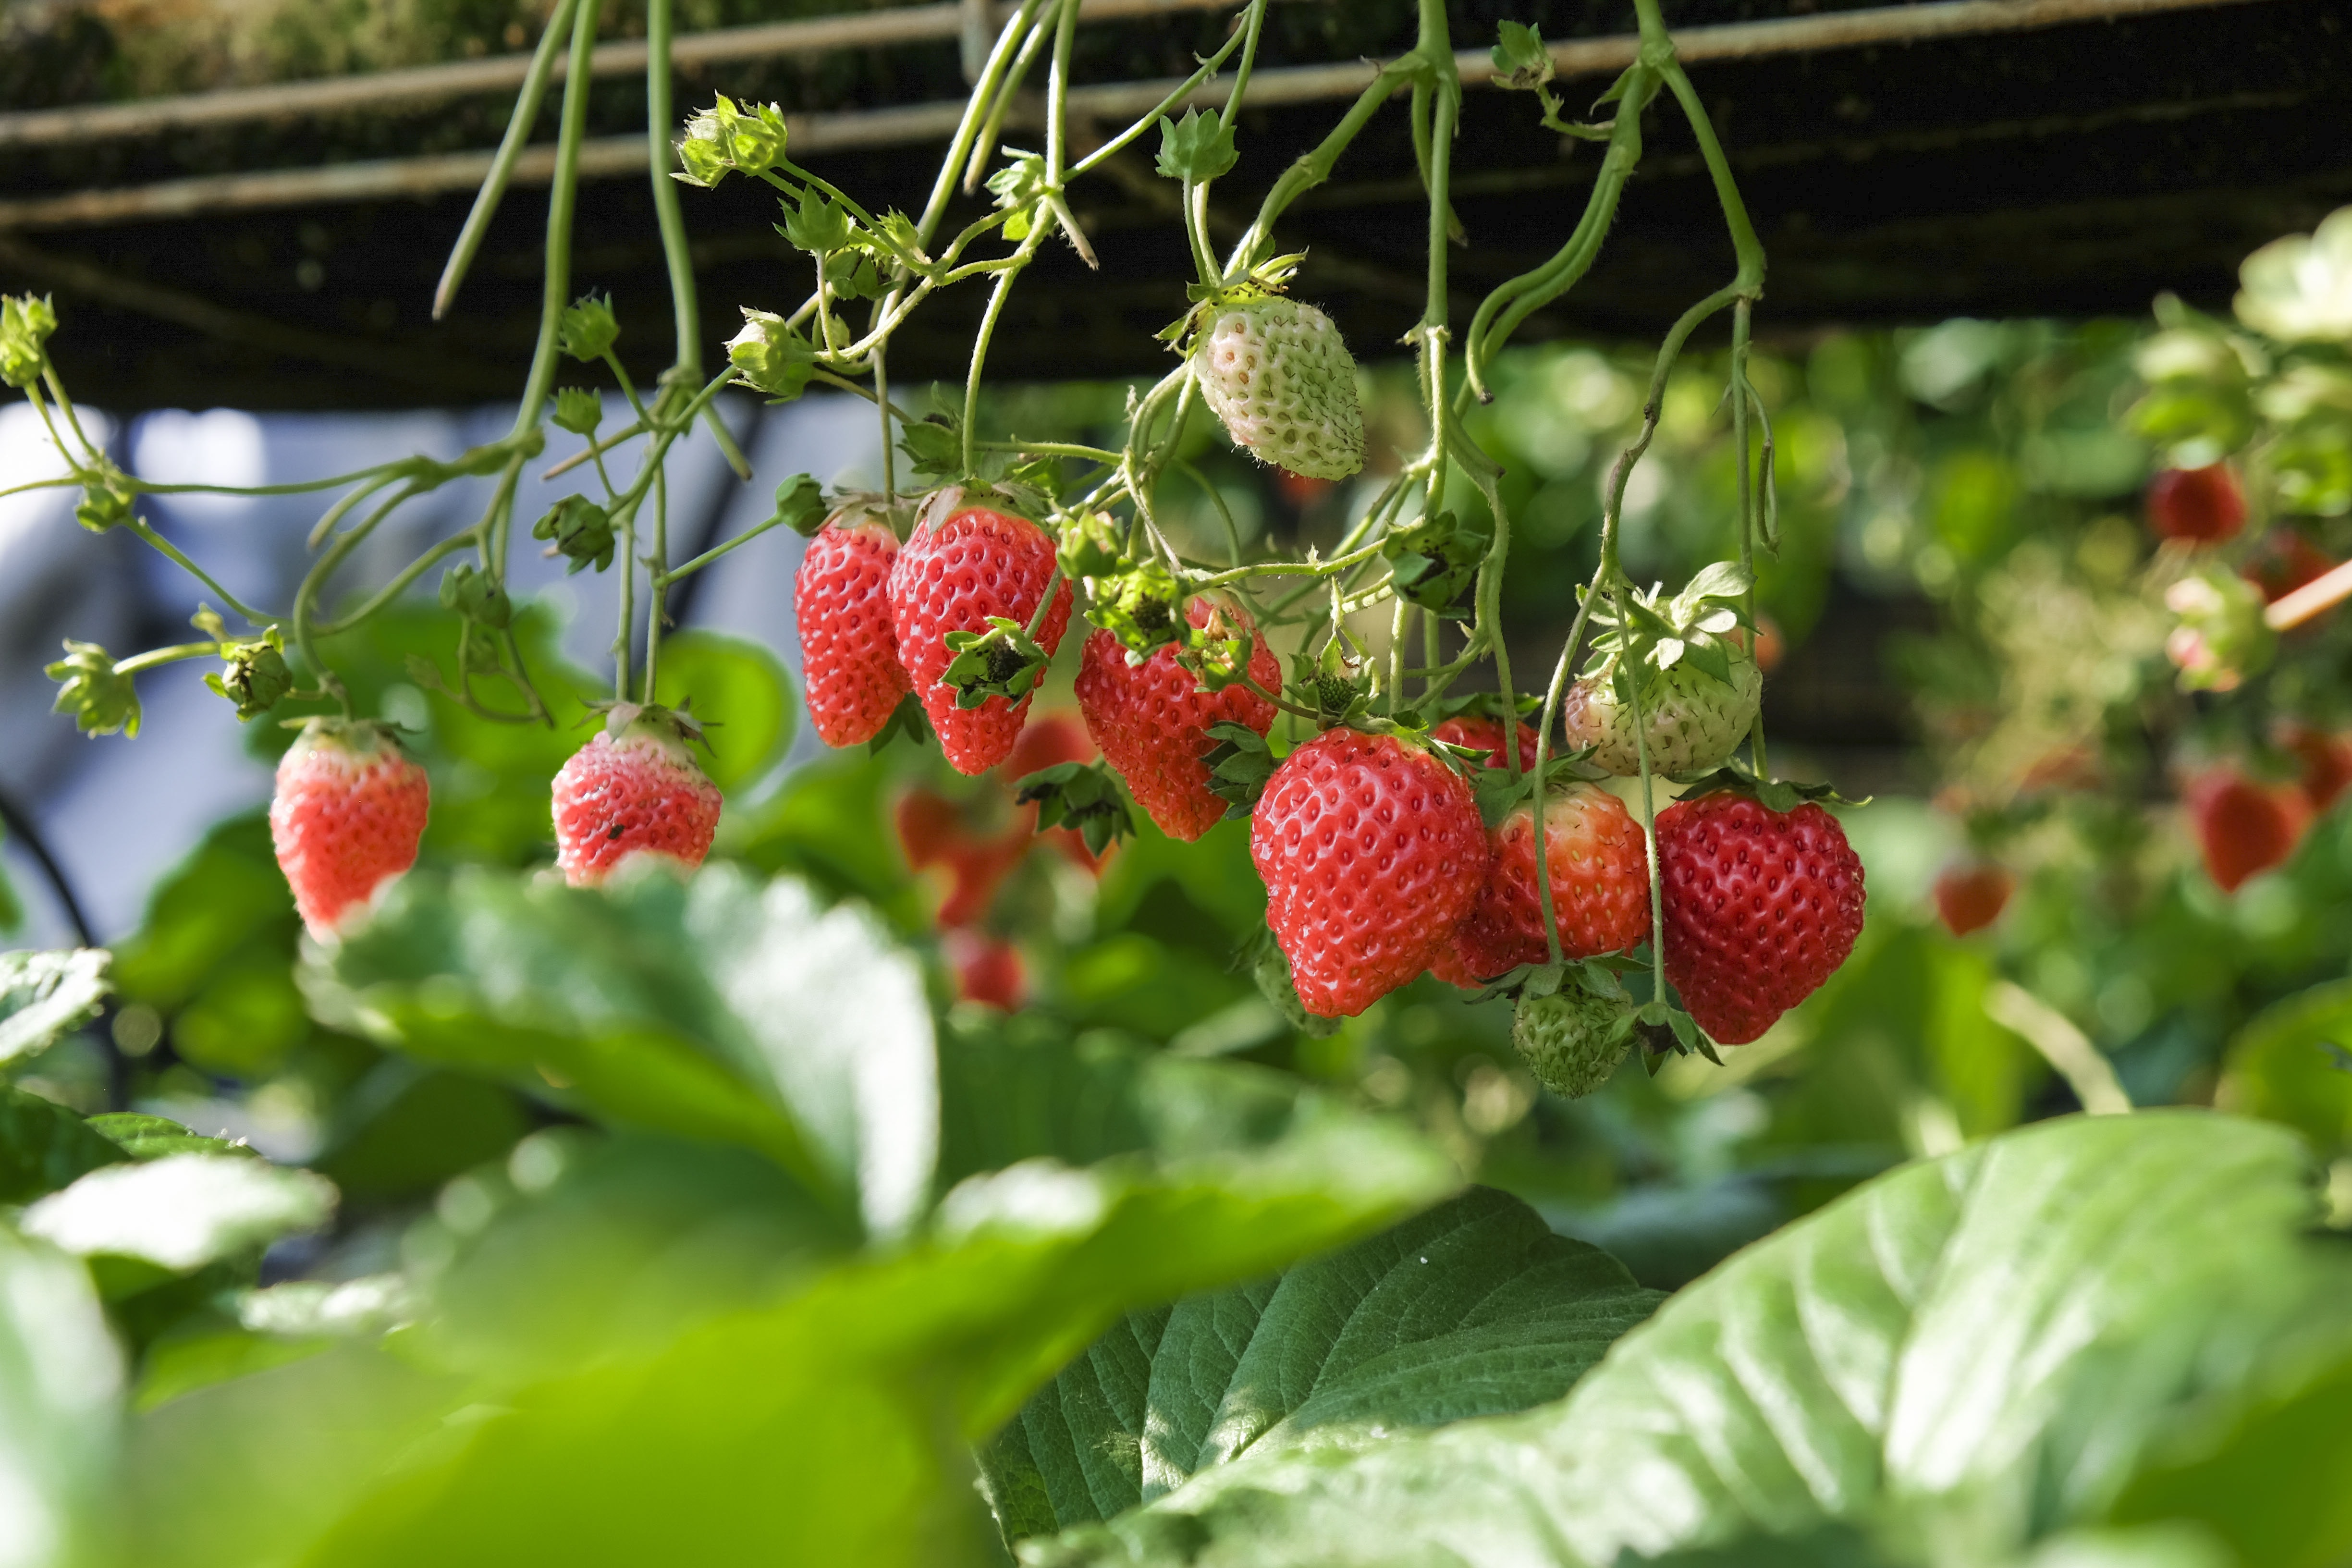 strawberries in shallow focus